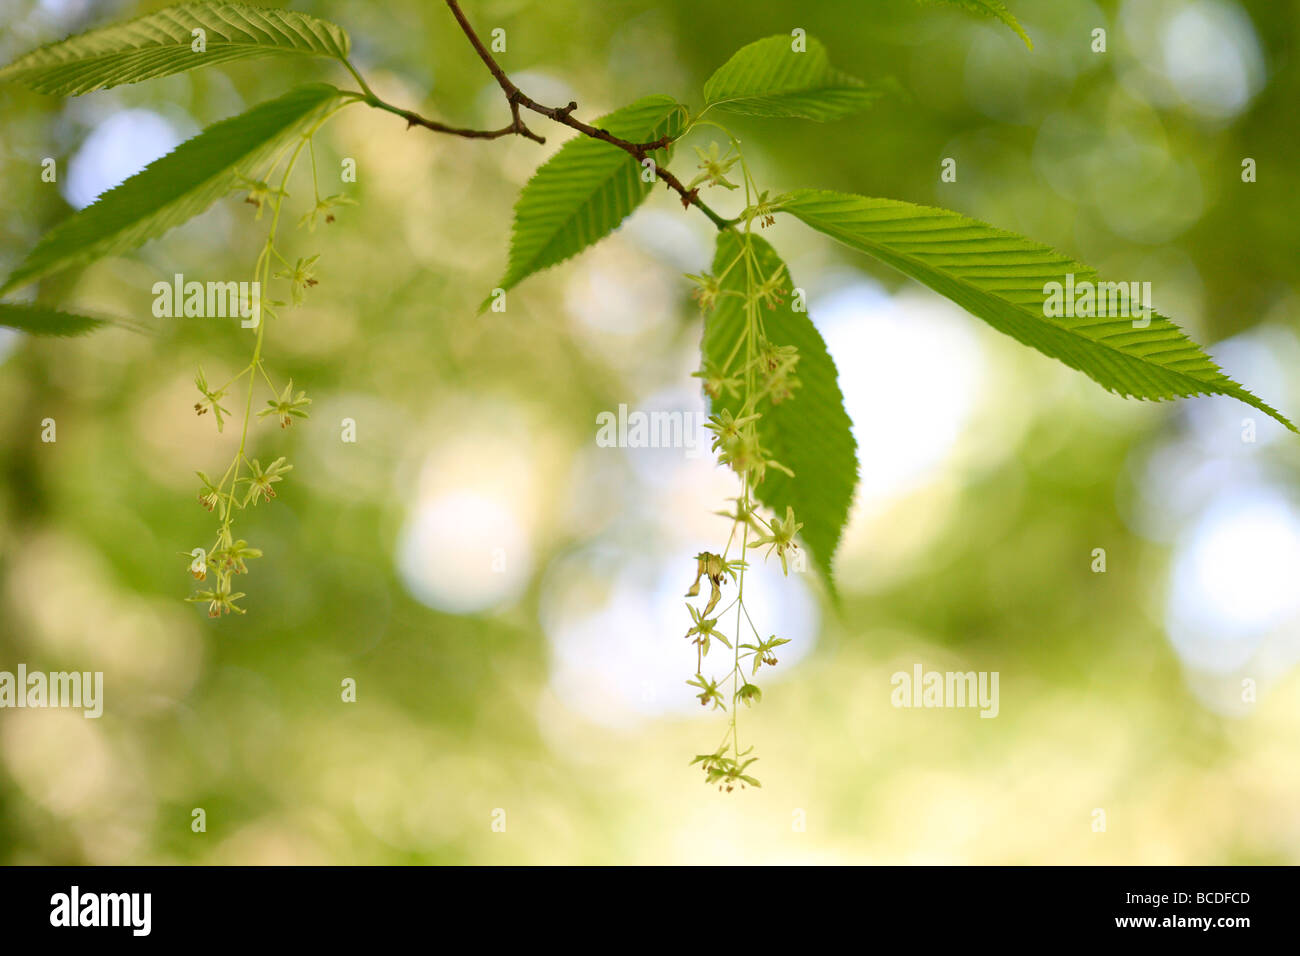 acer carpinifolium dainty drooping flower clusters native to Japan fine art photography Jane Ann Butler Photography - Stock Image